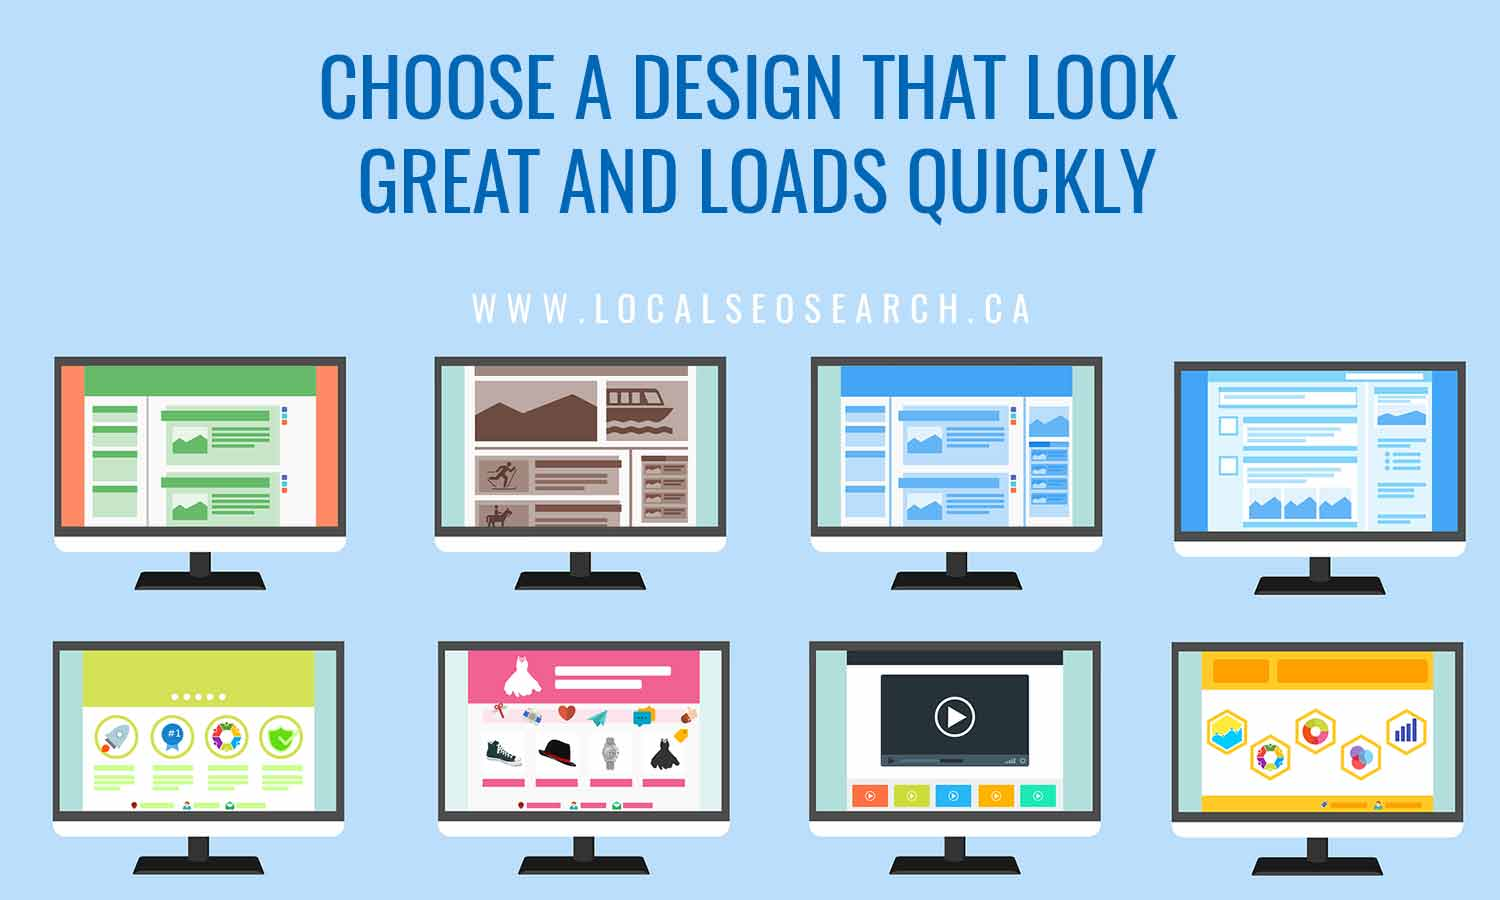 Choose-a-design-that-looks-great-and-loads-quickly